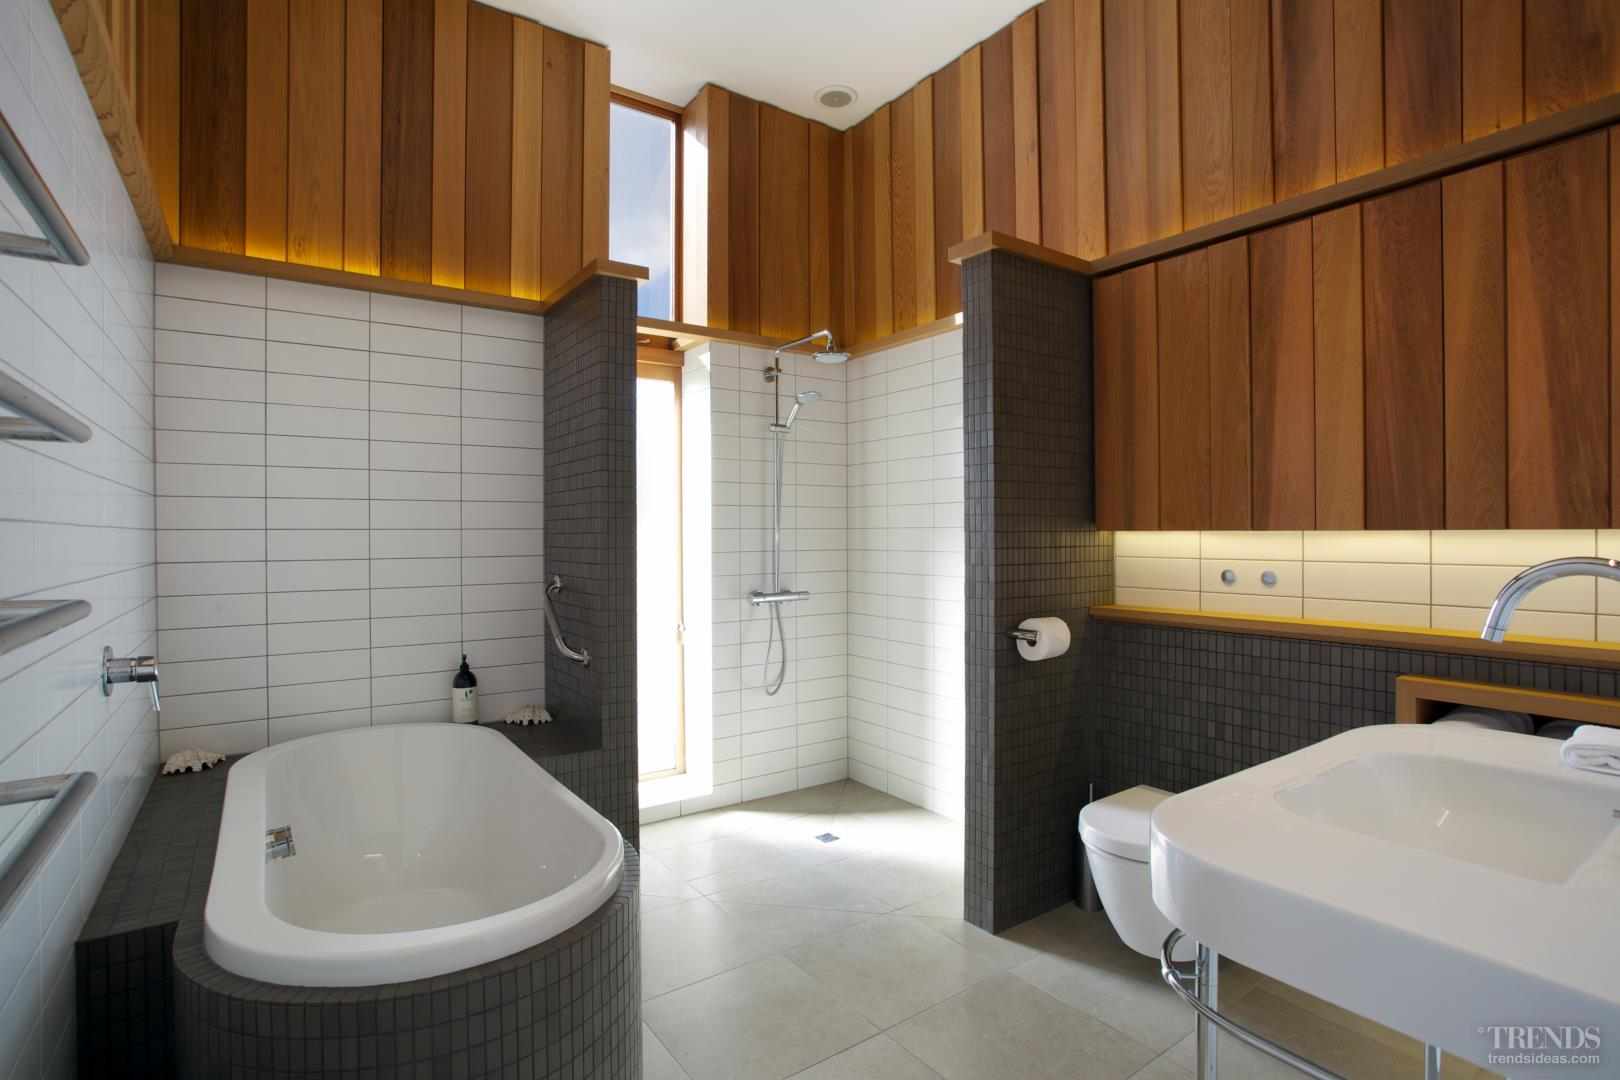 Bedrooms and bathroom auckland new best free home for New zealand bathroom design